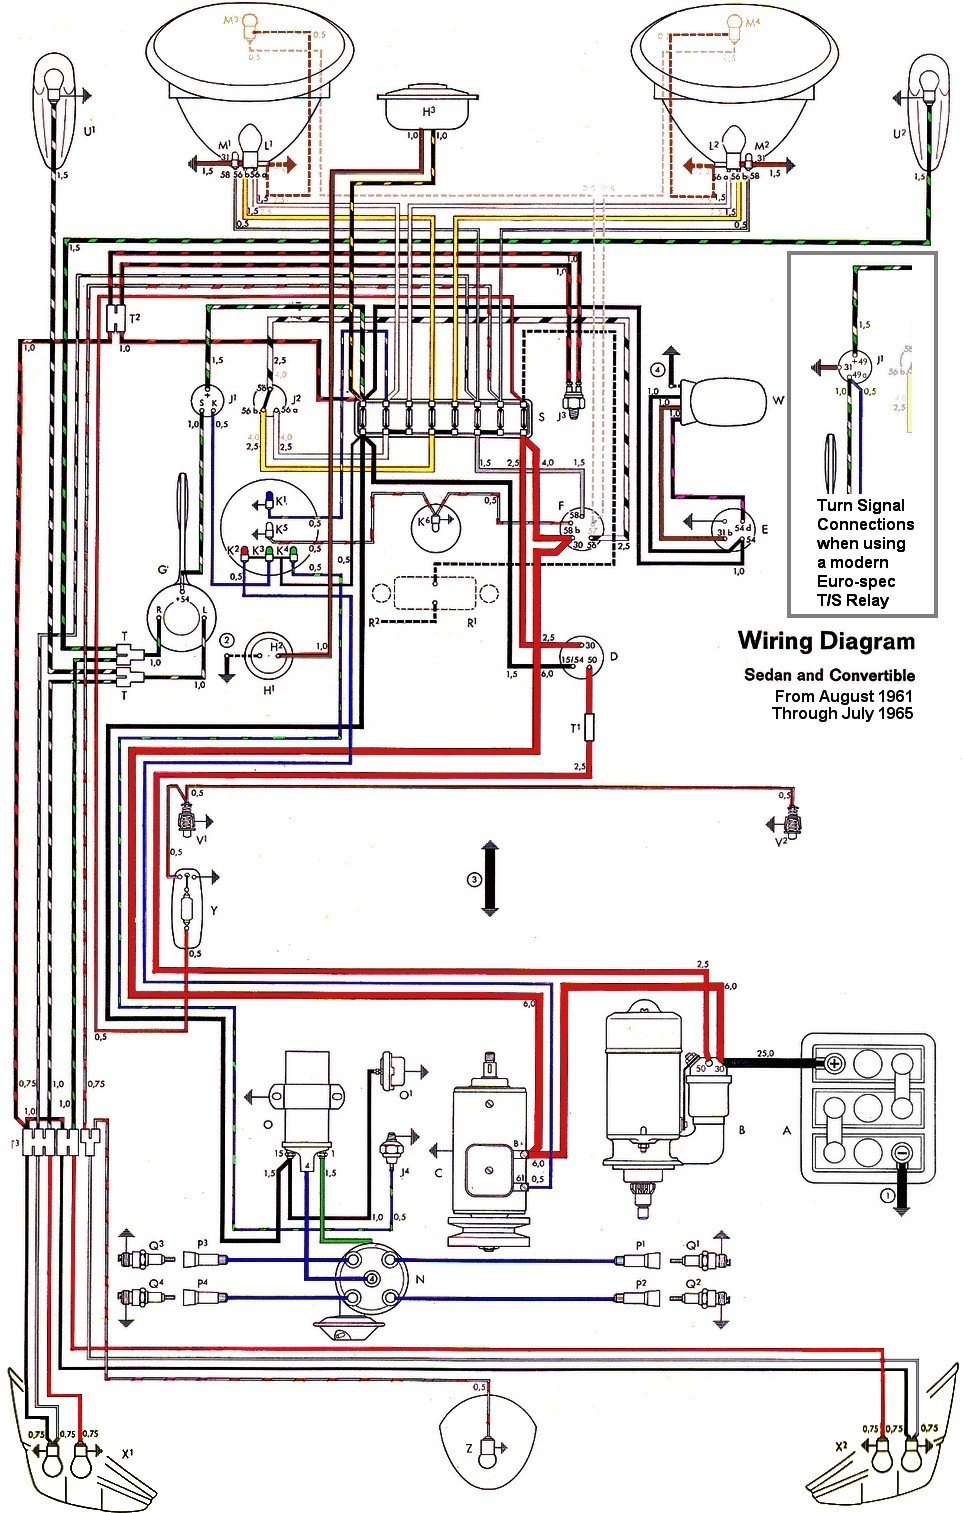 bug_62 65withinset thesamba com type 1 wiring diagrams vw wiring diagram at gsmportal.co